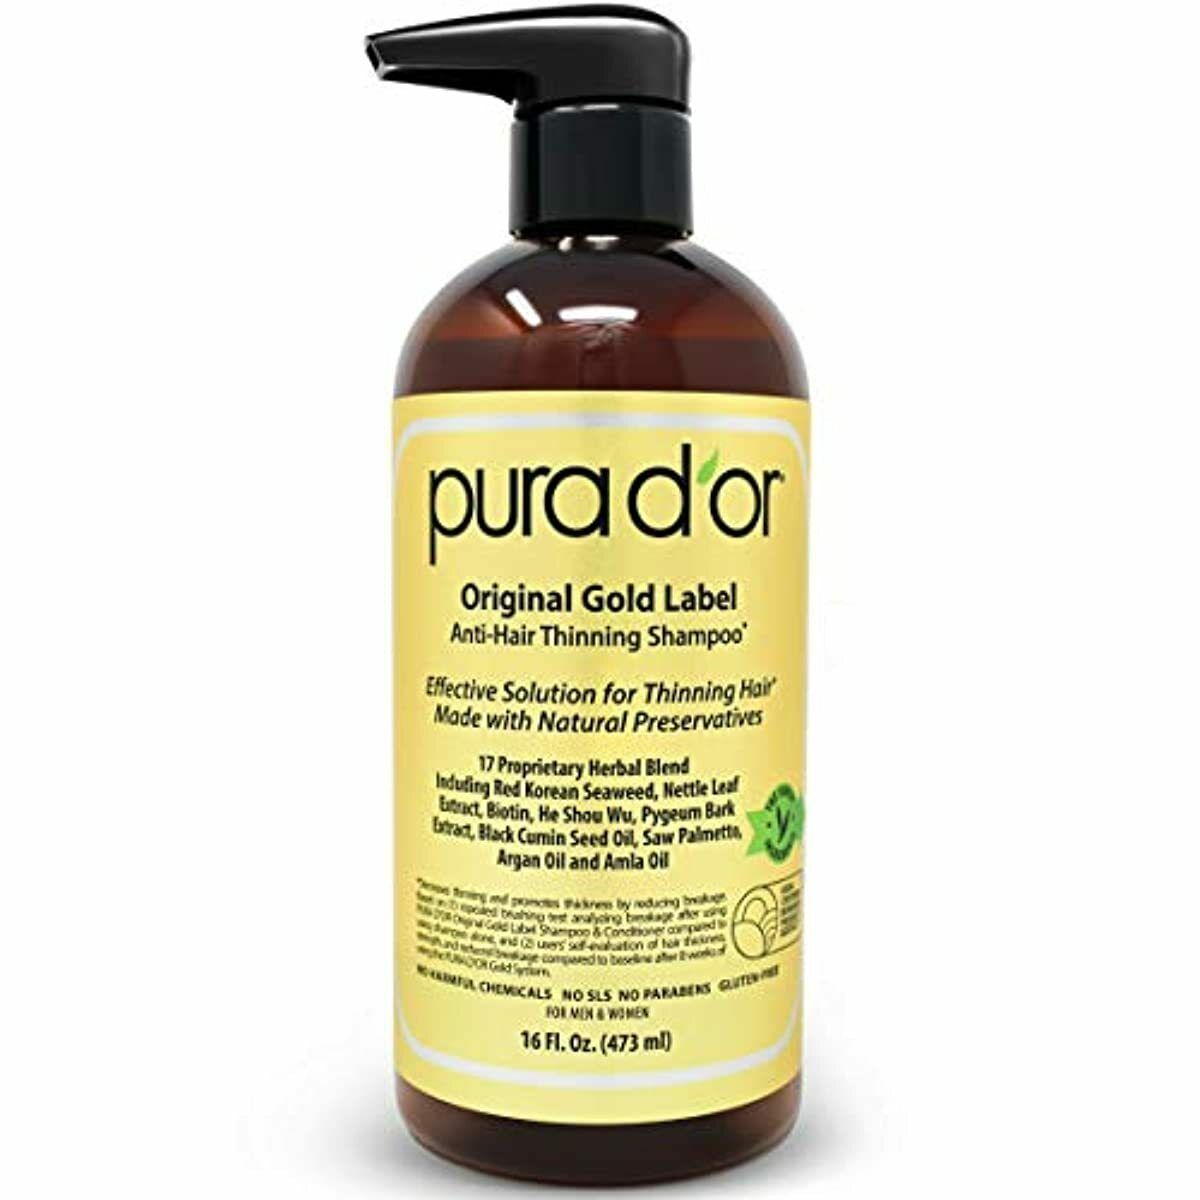 PURA D'OR Original Gold Label Anti-Thinning Shampoo Clinical